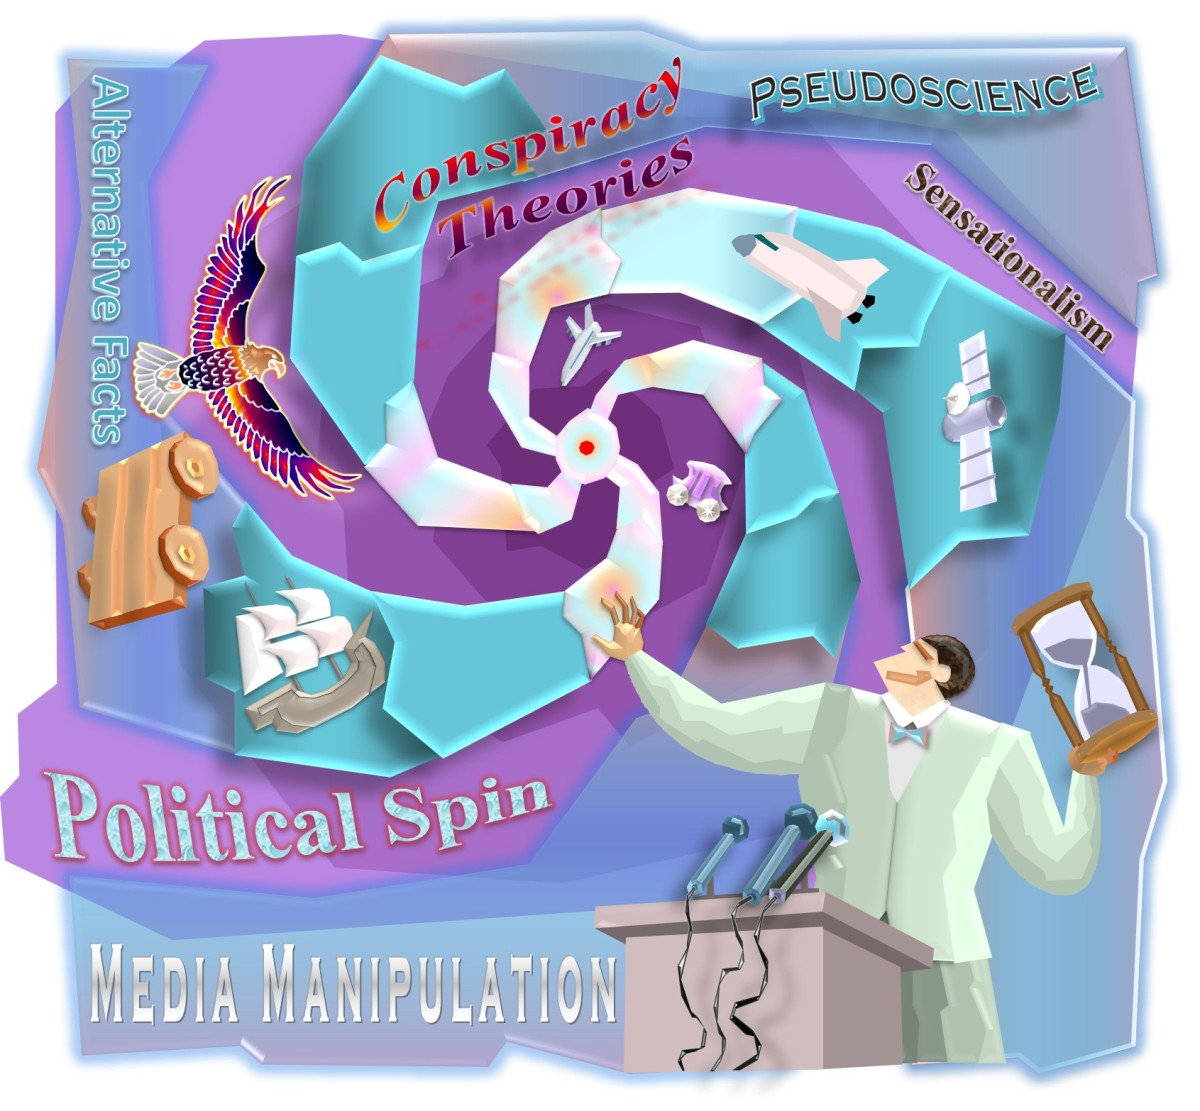 Political Spin and Media Manipulation with Pseudoscience, Sensationalism, Alternative Facts and Conspiracy Theories